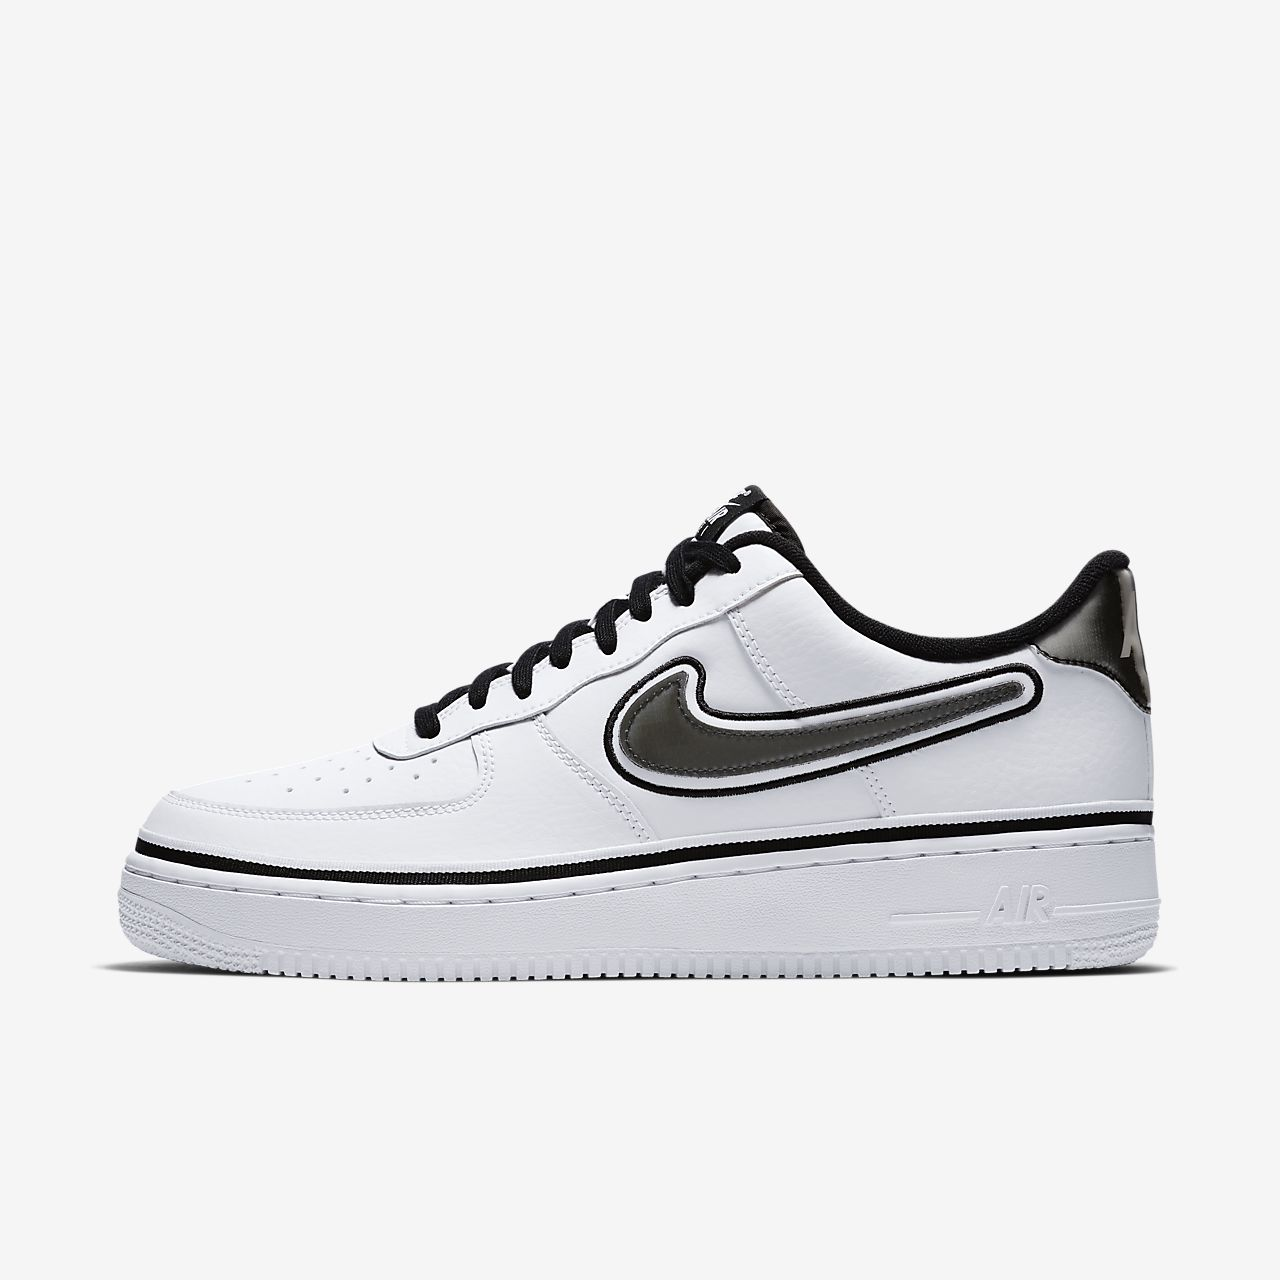 Nike Air Force 1 \u002707 LV8 Sport NBA Shoe